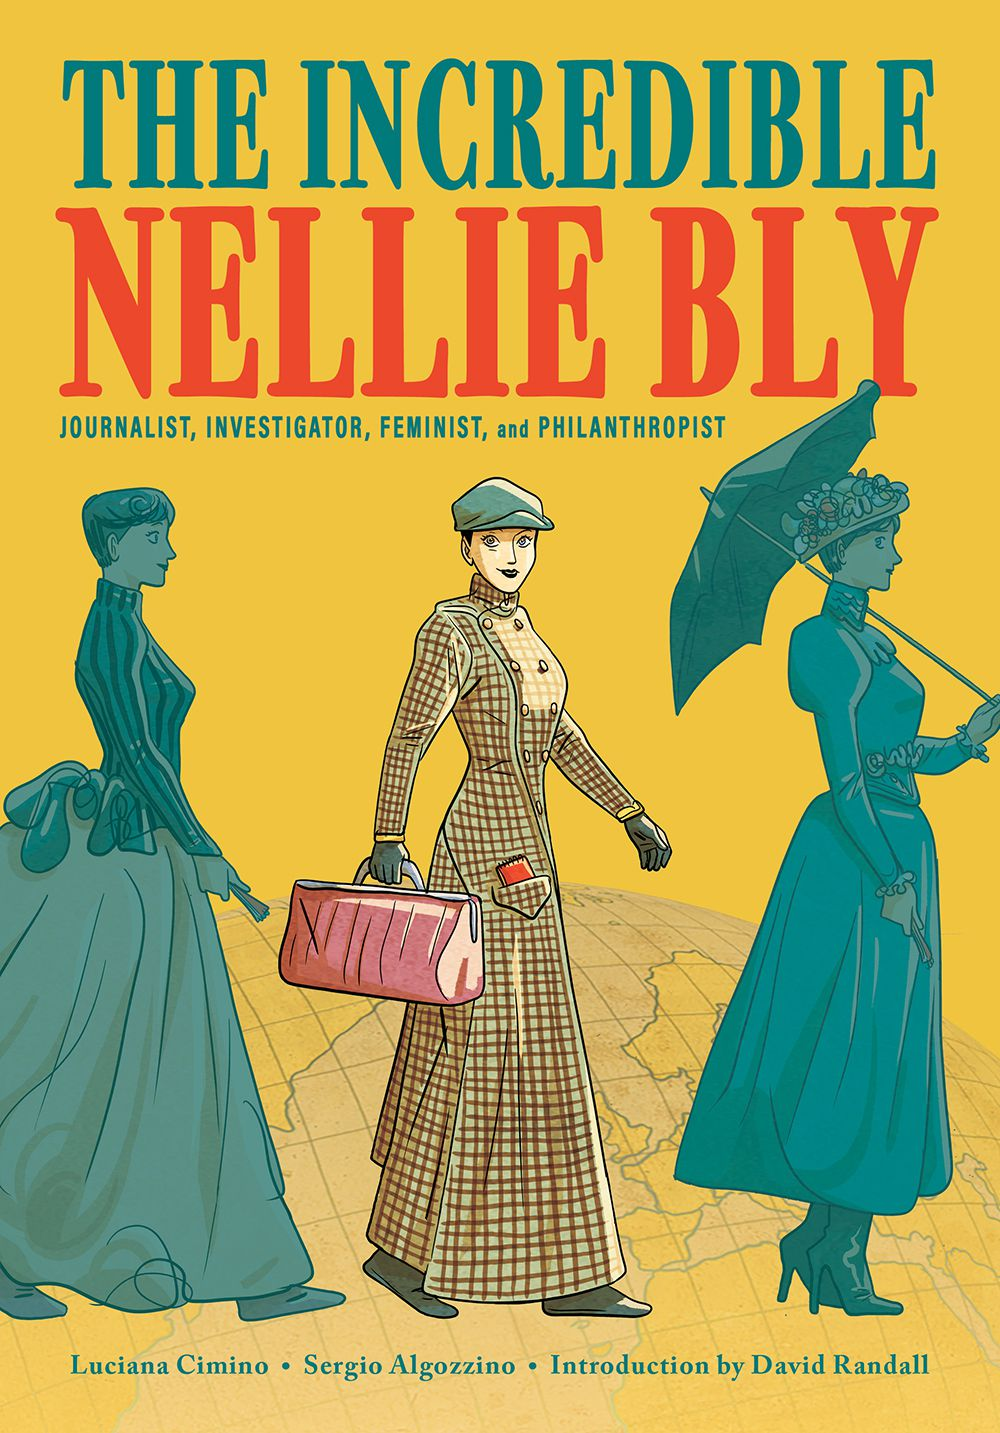 the incredibly nellie bly cover